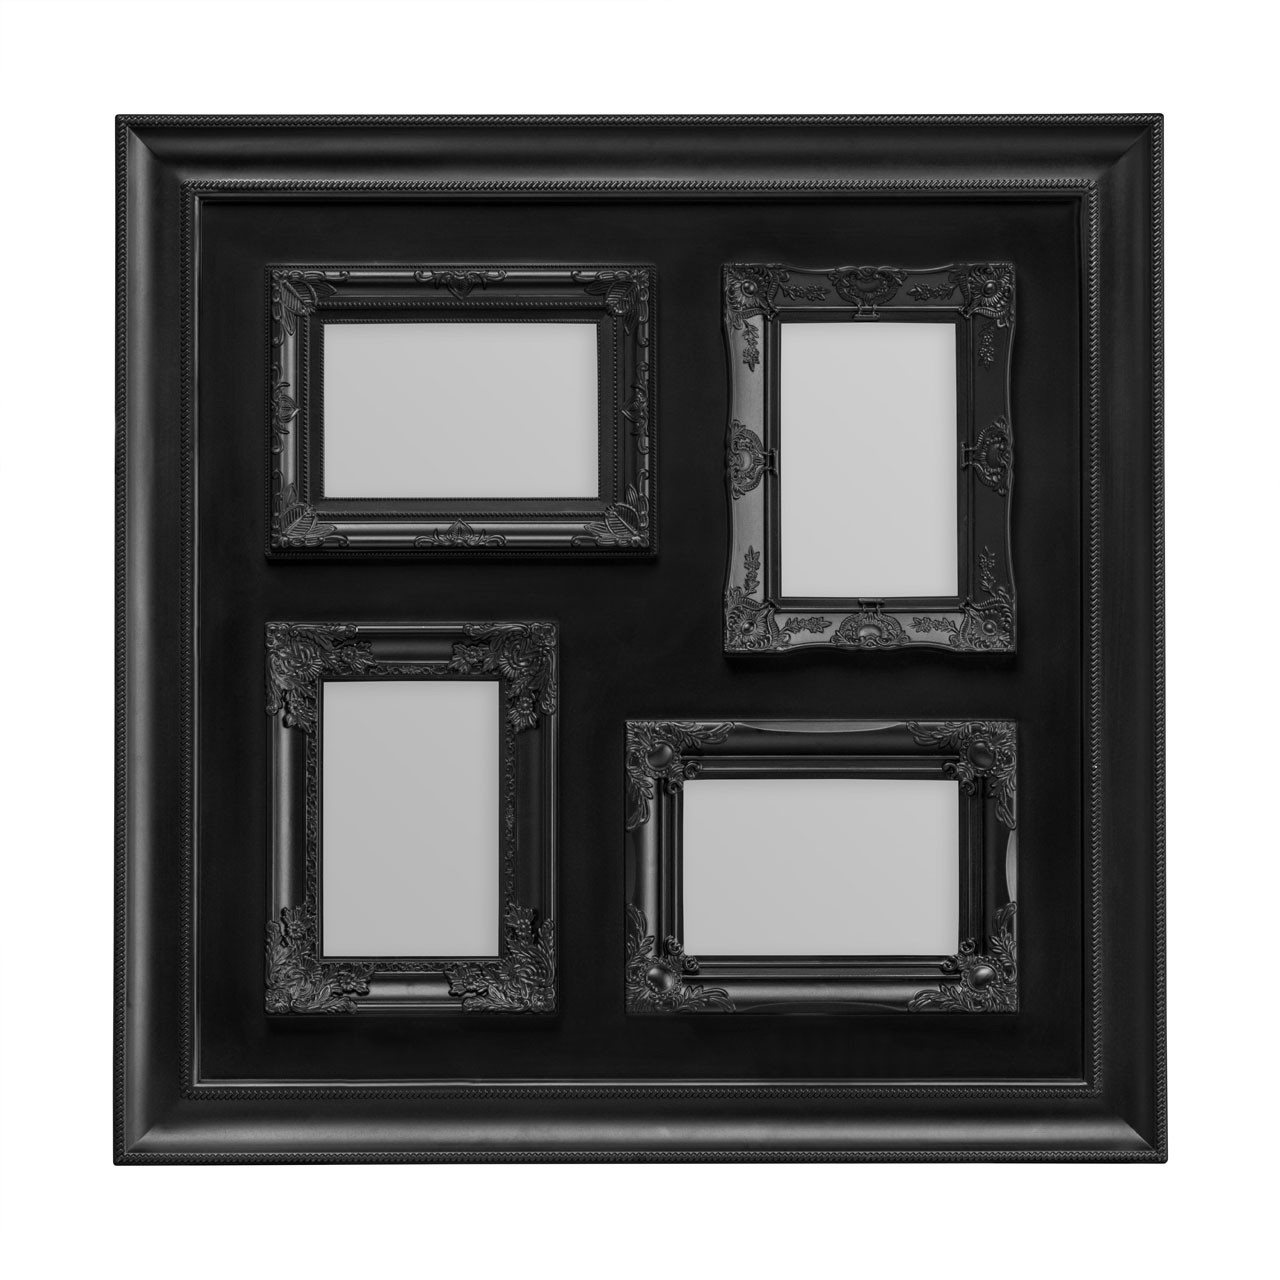 "Prime Furnishing 4 Photos Plastic Photo Frame, 4 x 6"" - Black"